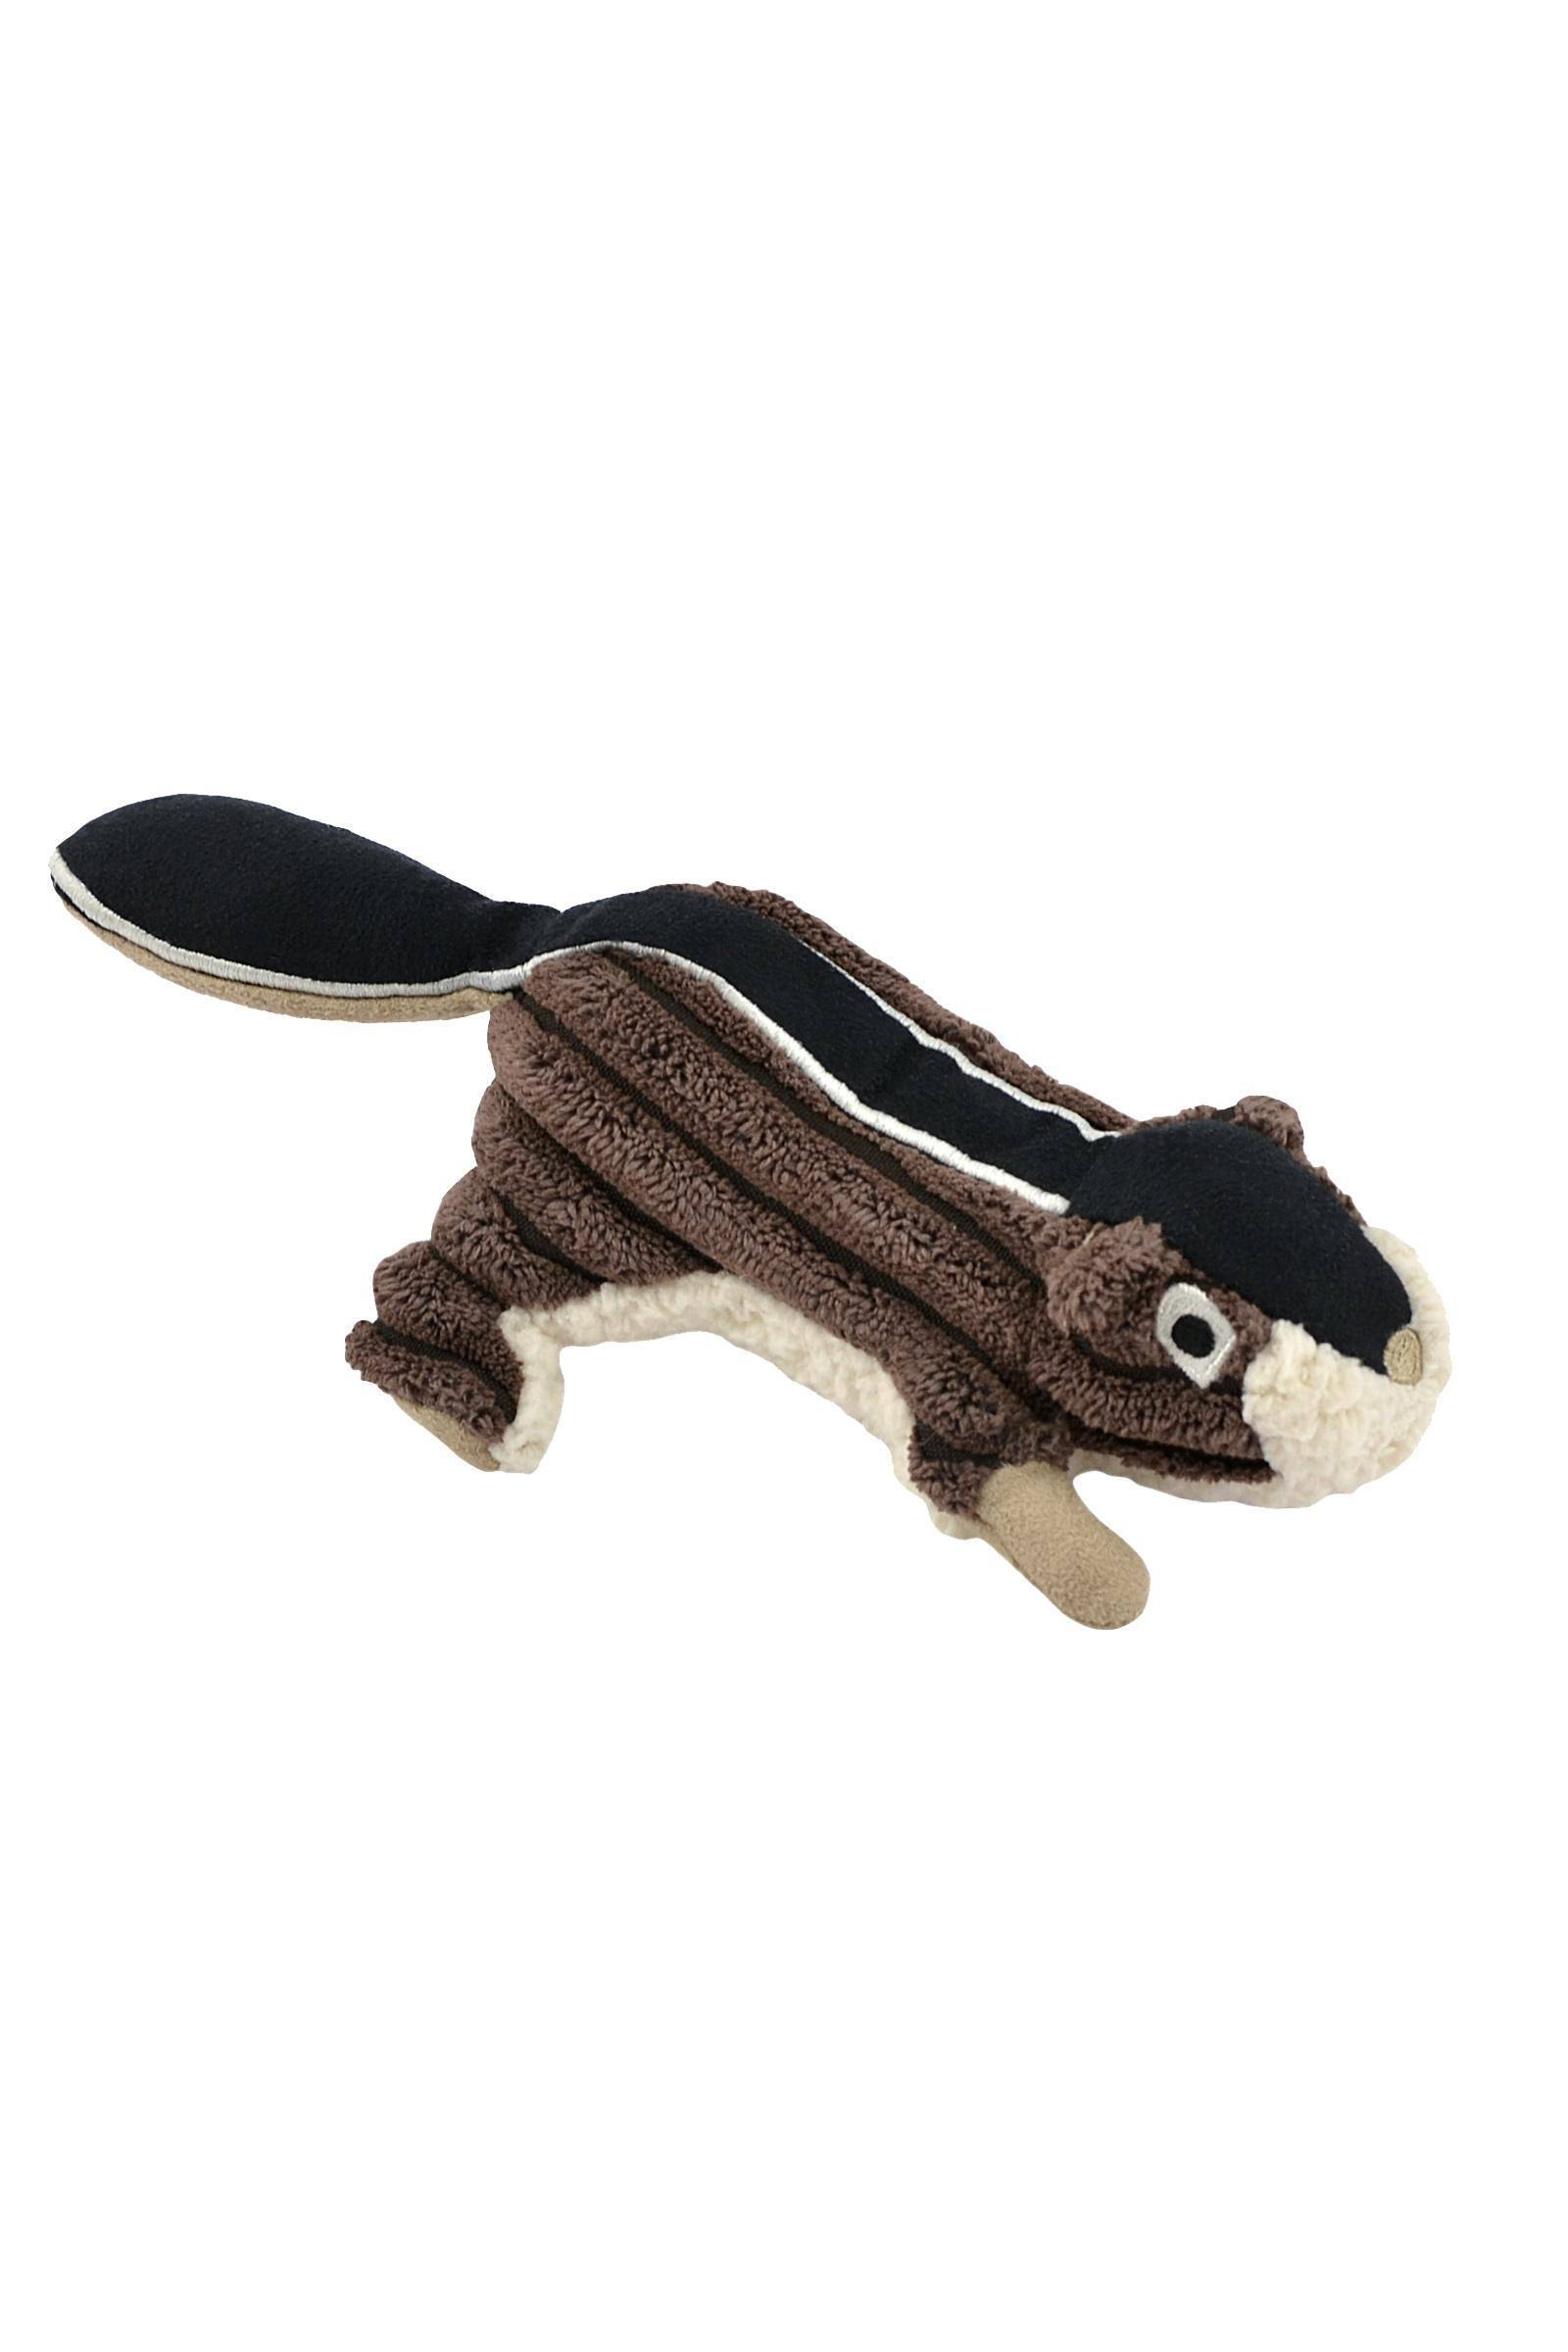 Tall Tails Squeaker Chipmunk Dog Toy 5""